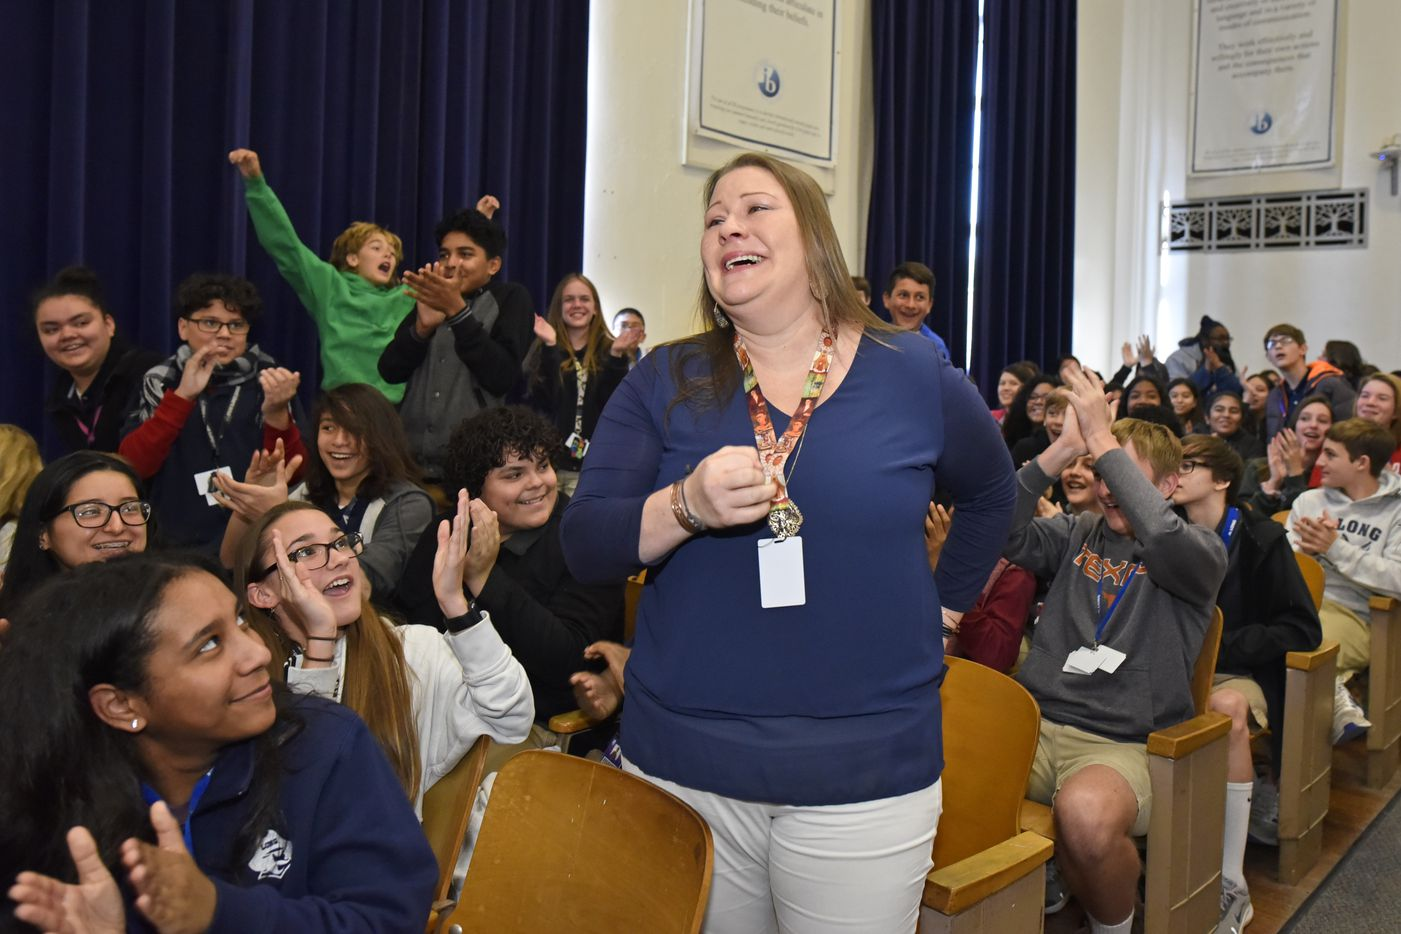 Susan Moreno, a J.L. Long Middle School Spanish teacher, is shocked as she's named a 2019 Milken Educator Award winner for being one of the nation's best educators.